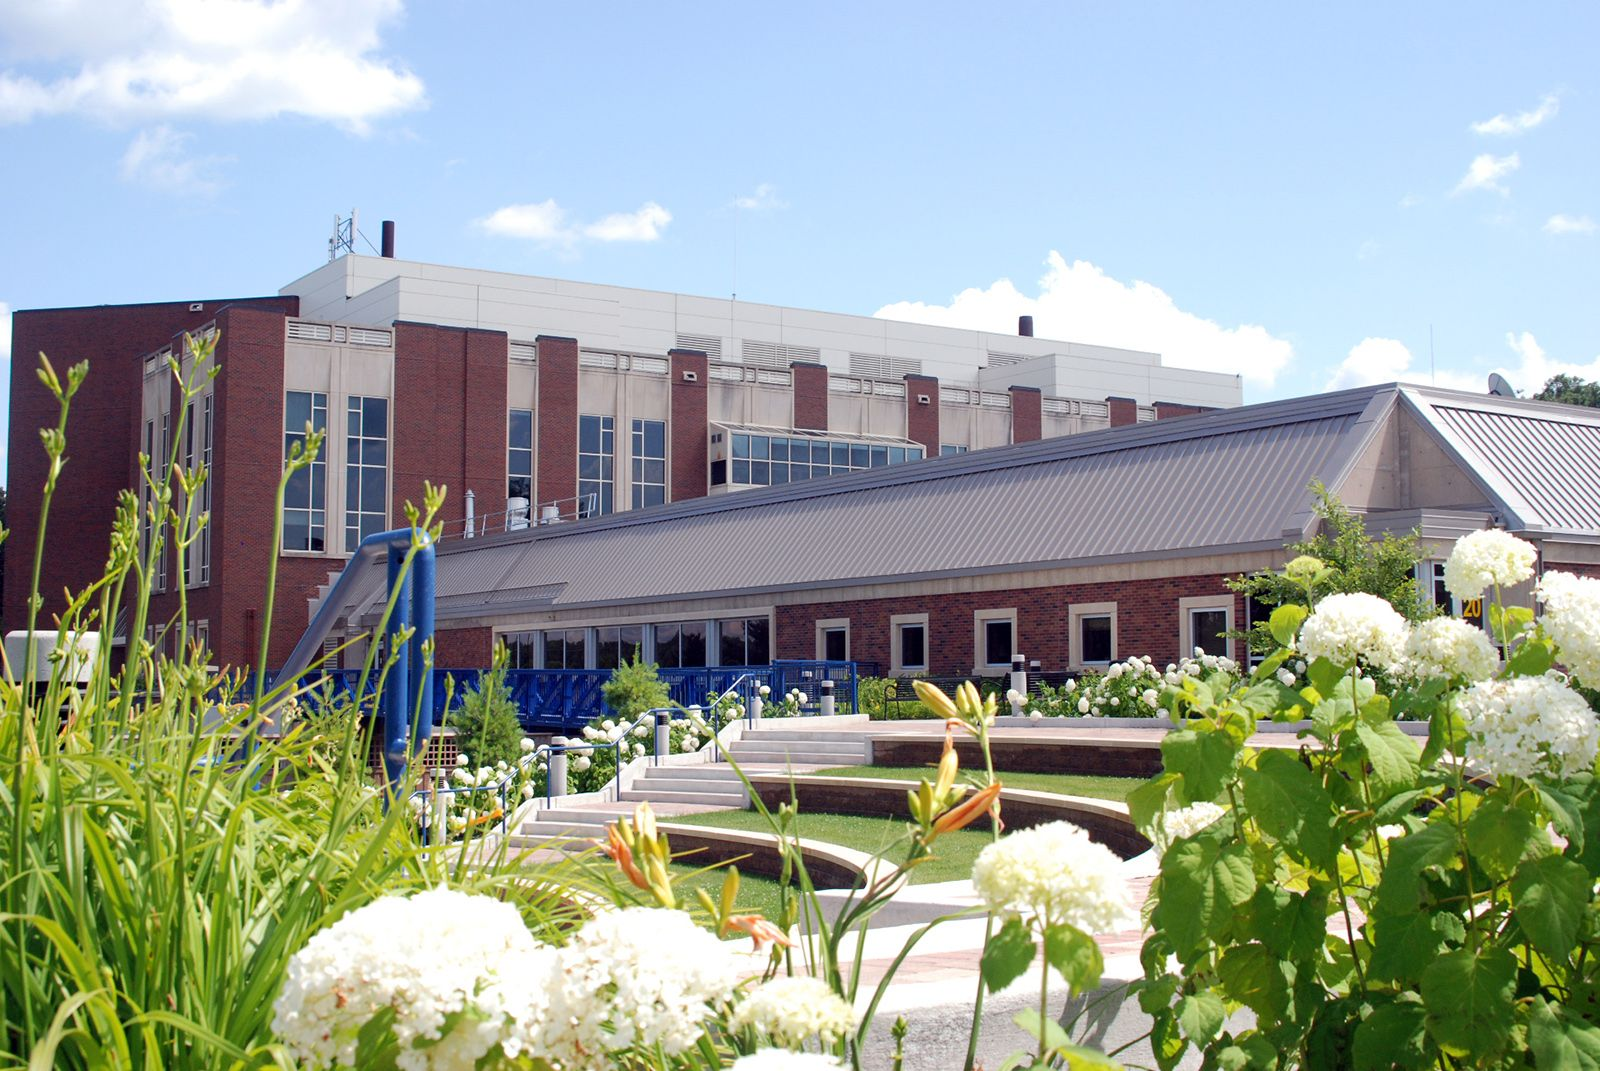 Ampitheater looking at Health Sciences Higher education